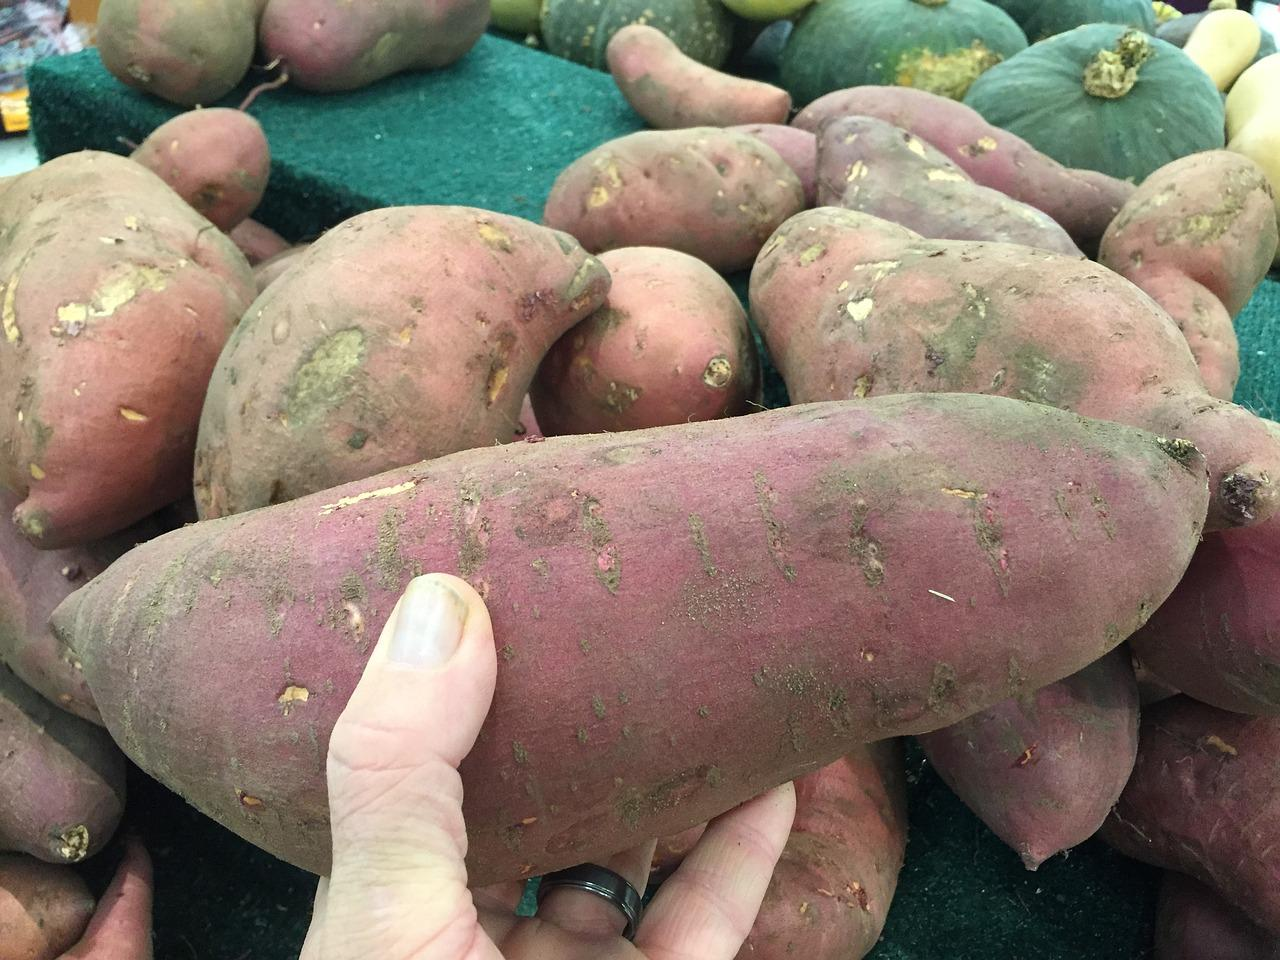 Okinawans love their sweet potatoes. (Image: maxpixel / CC0 1.0)